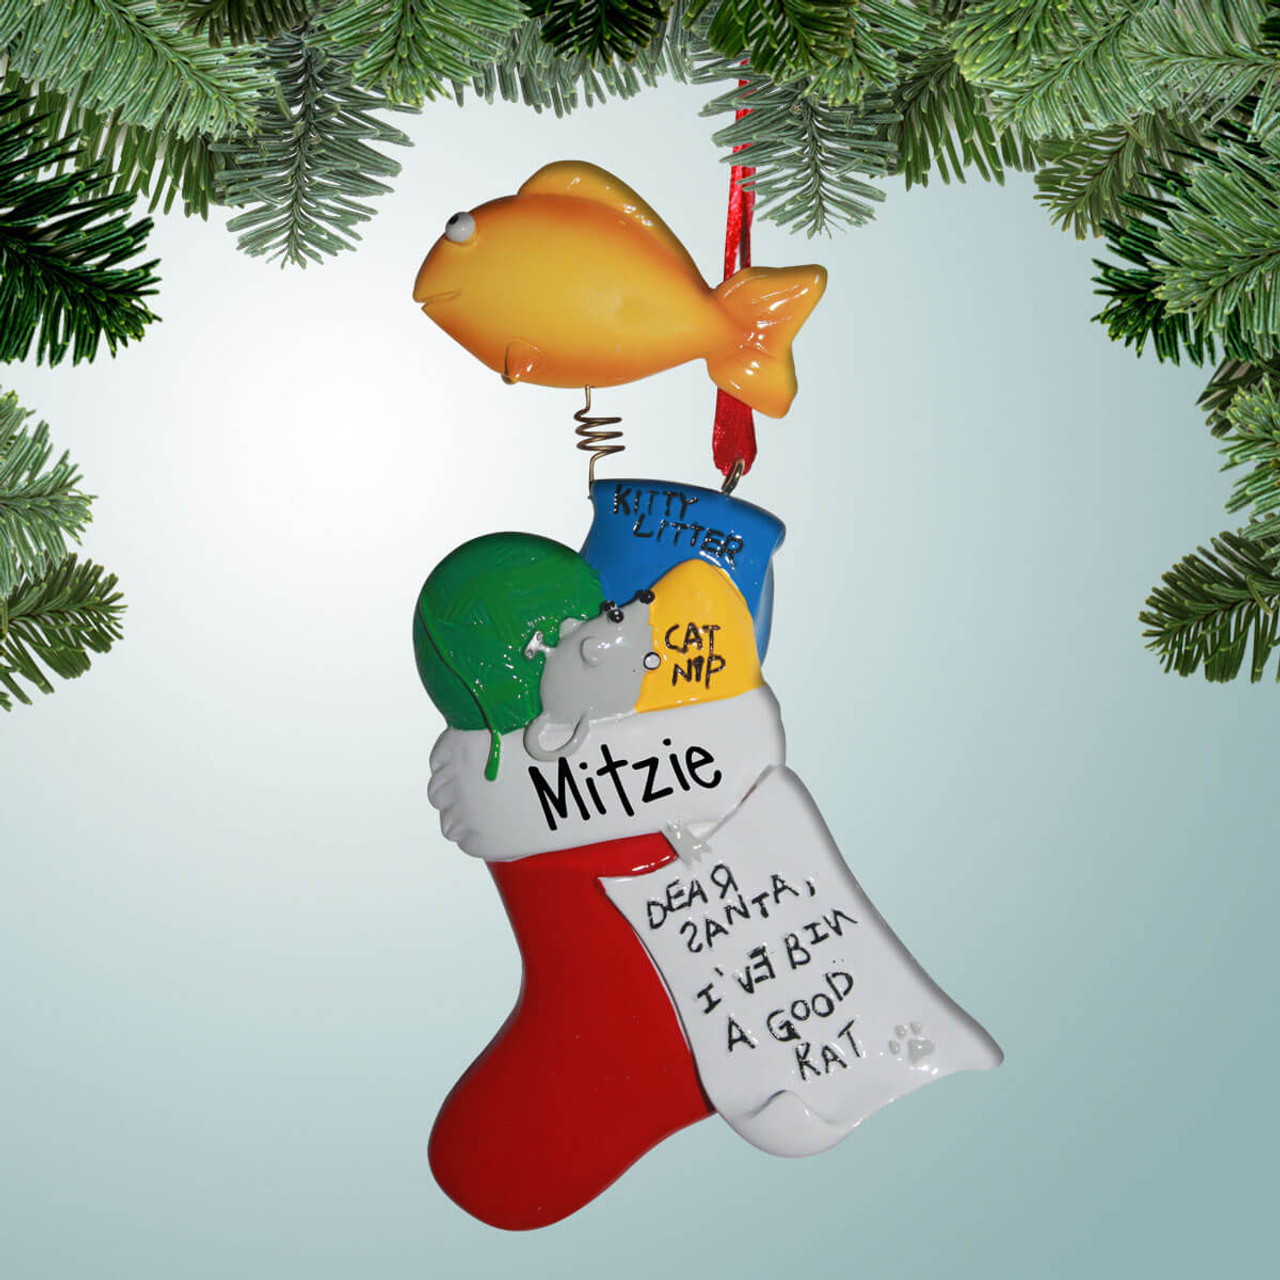 Cat Christmas Stockings.Cat Stocking With Bad Spelling